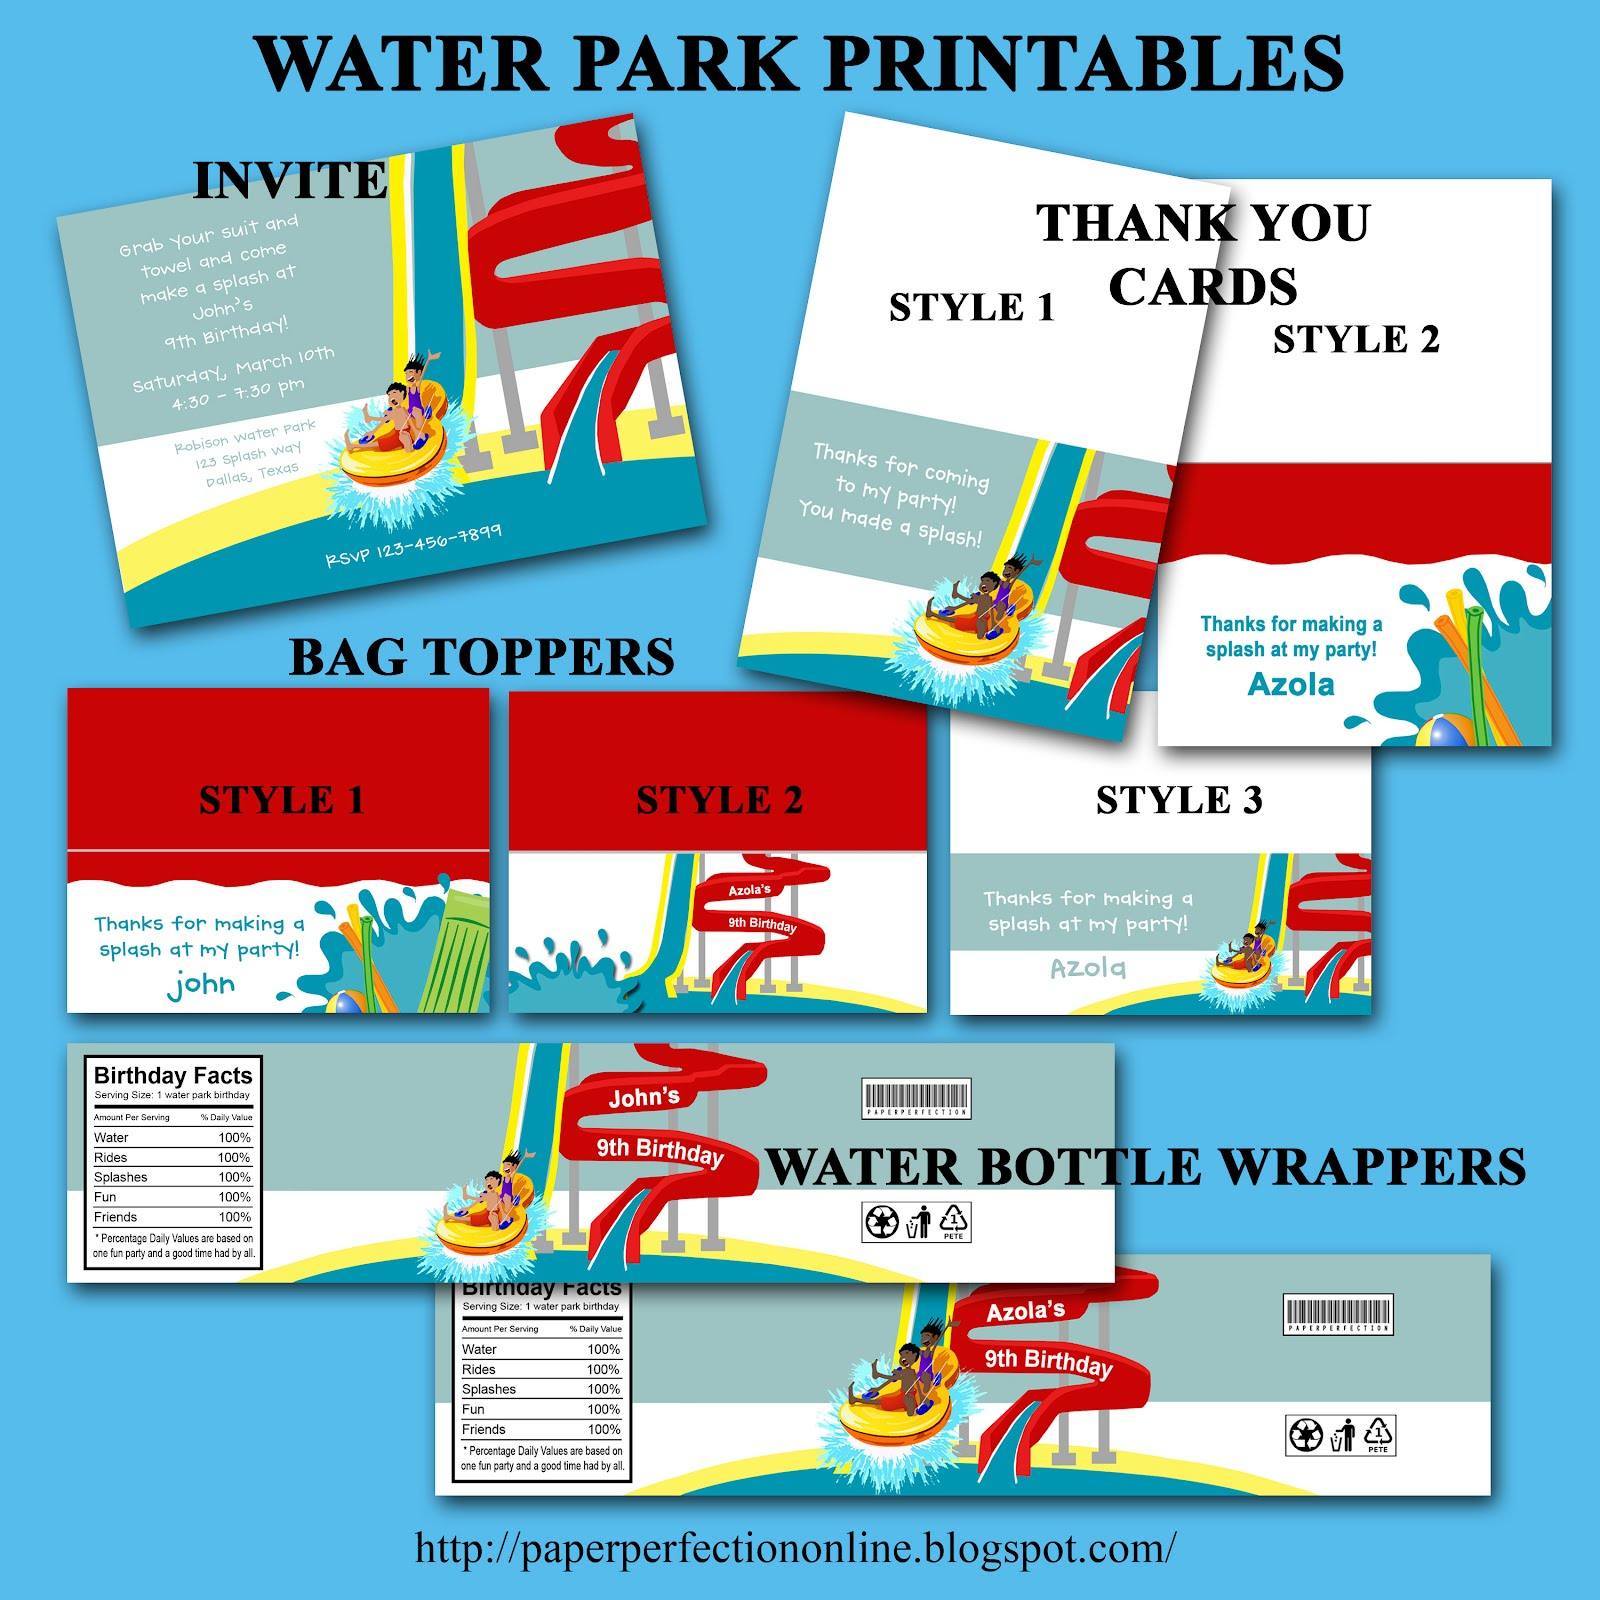 Paper Perfection: Water Park Party Invitation and Printables